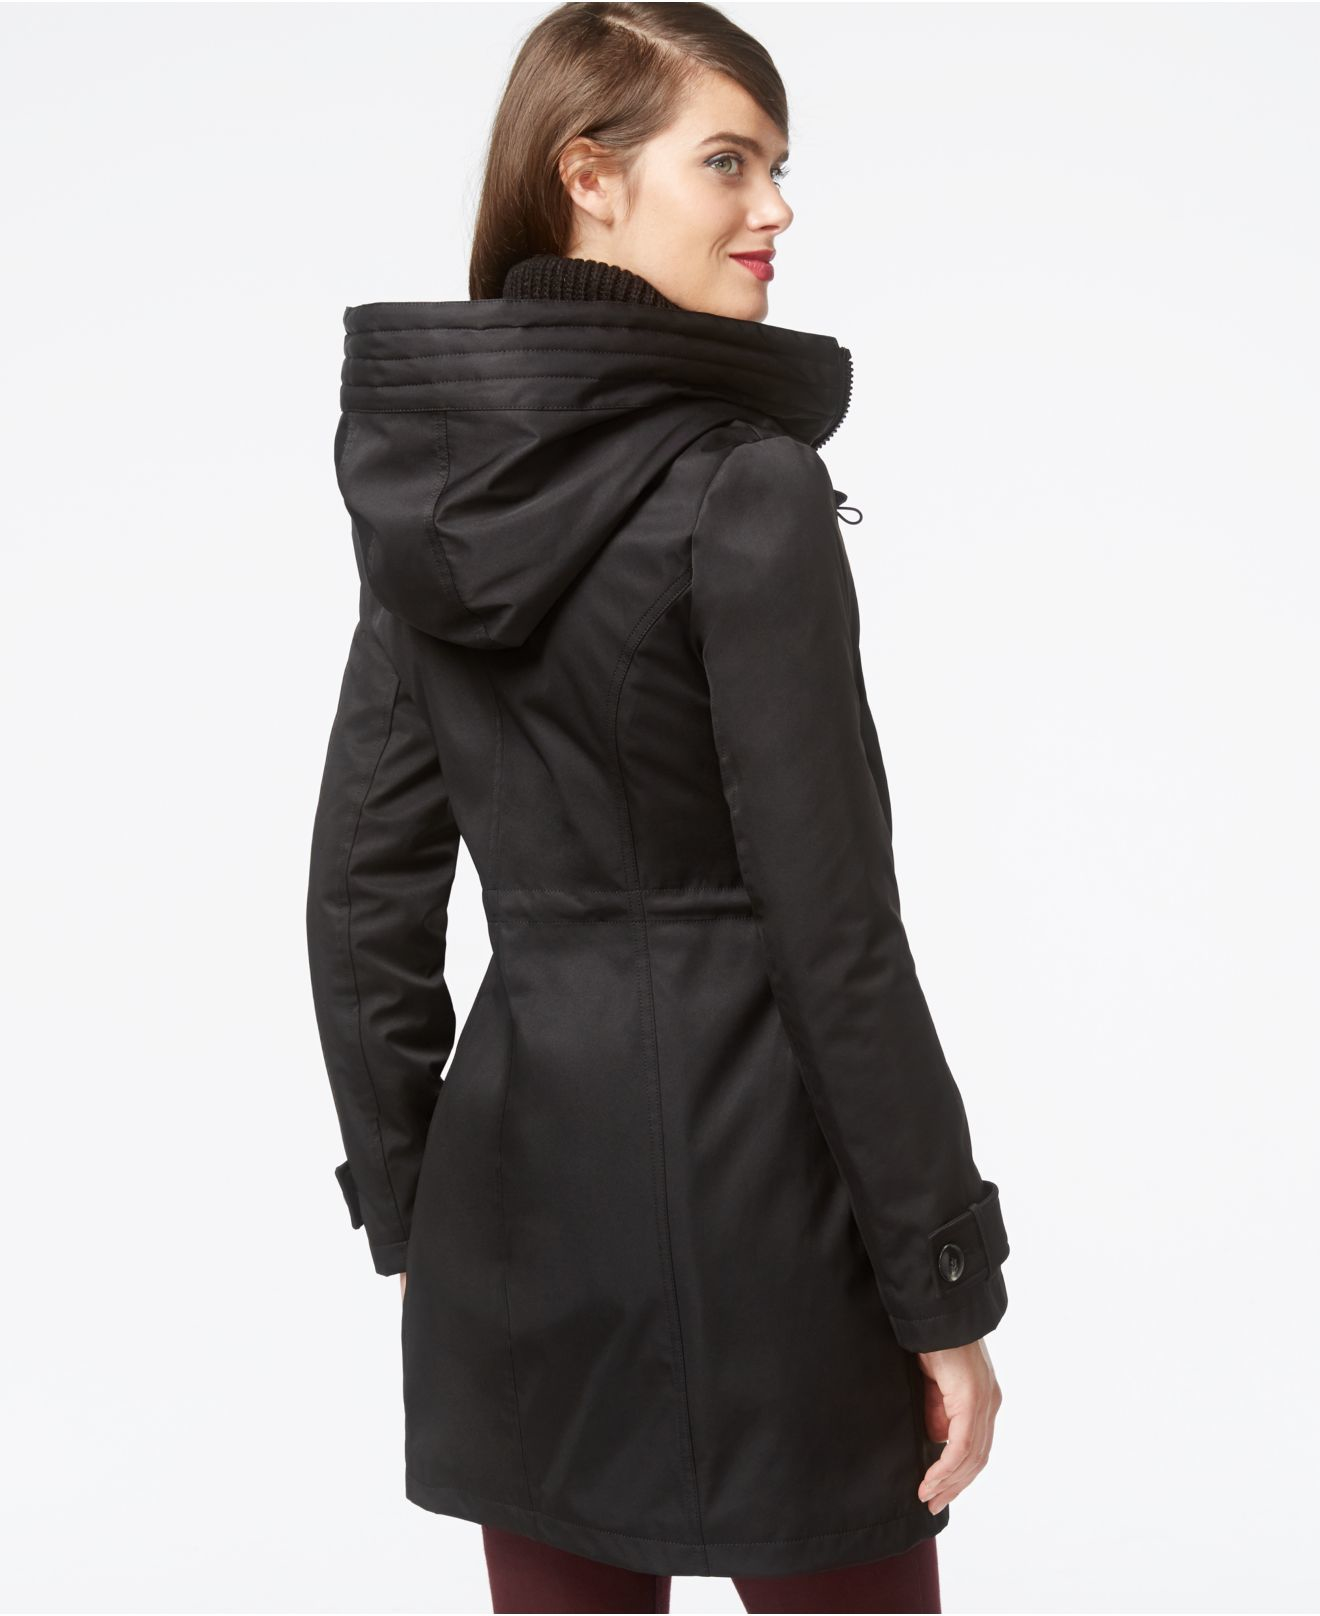 Kensie Quilted Parka Jacket in Black | Lyst